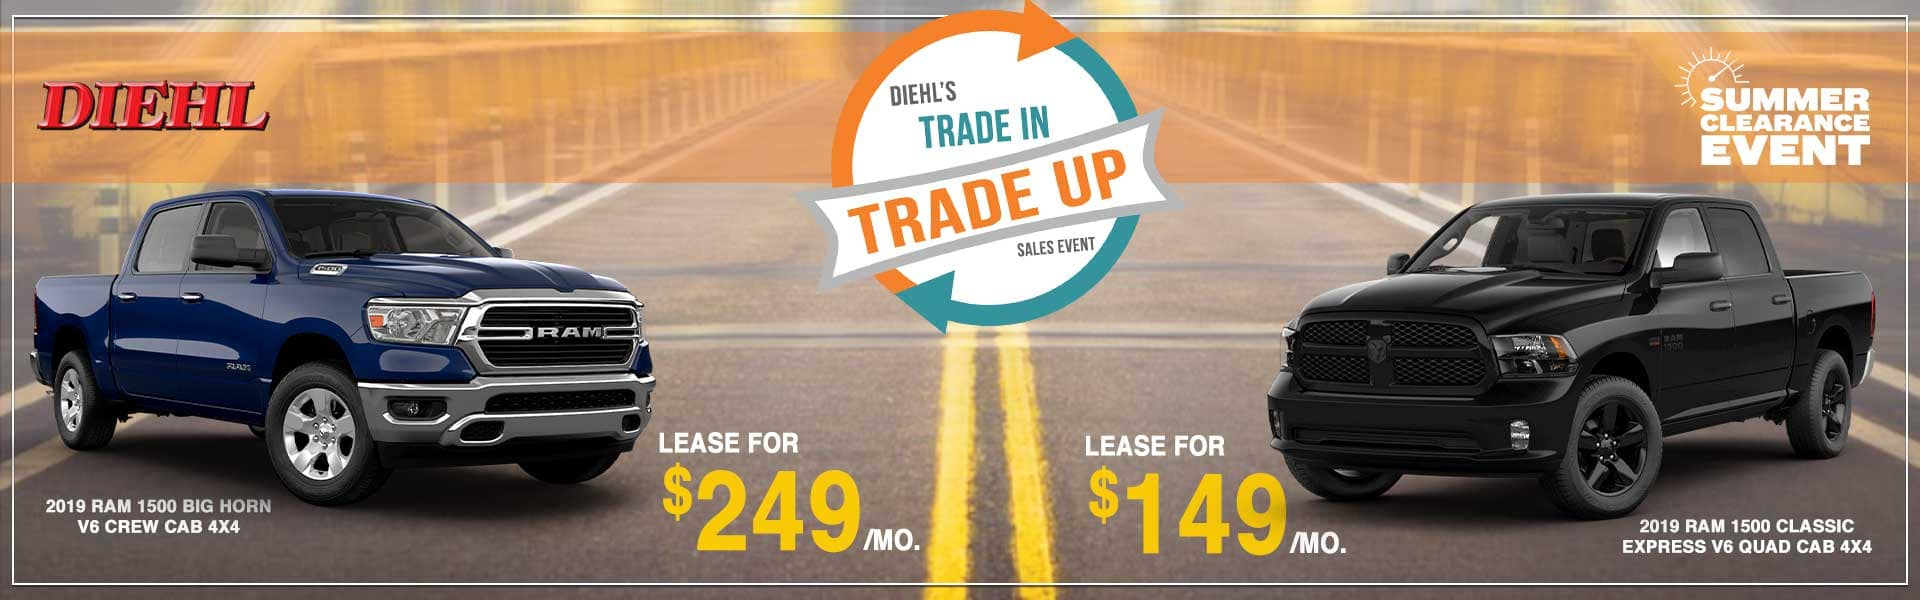 Diehl Automotive Trade In Trade Up Sales Event Summer of Jeep jeep grand cherokee jeep compass lease specials labor day sales event ROBINSON summer clearance event